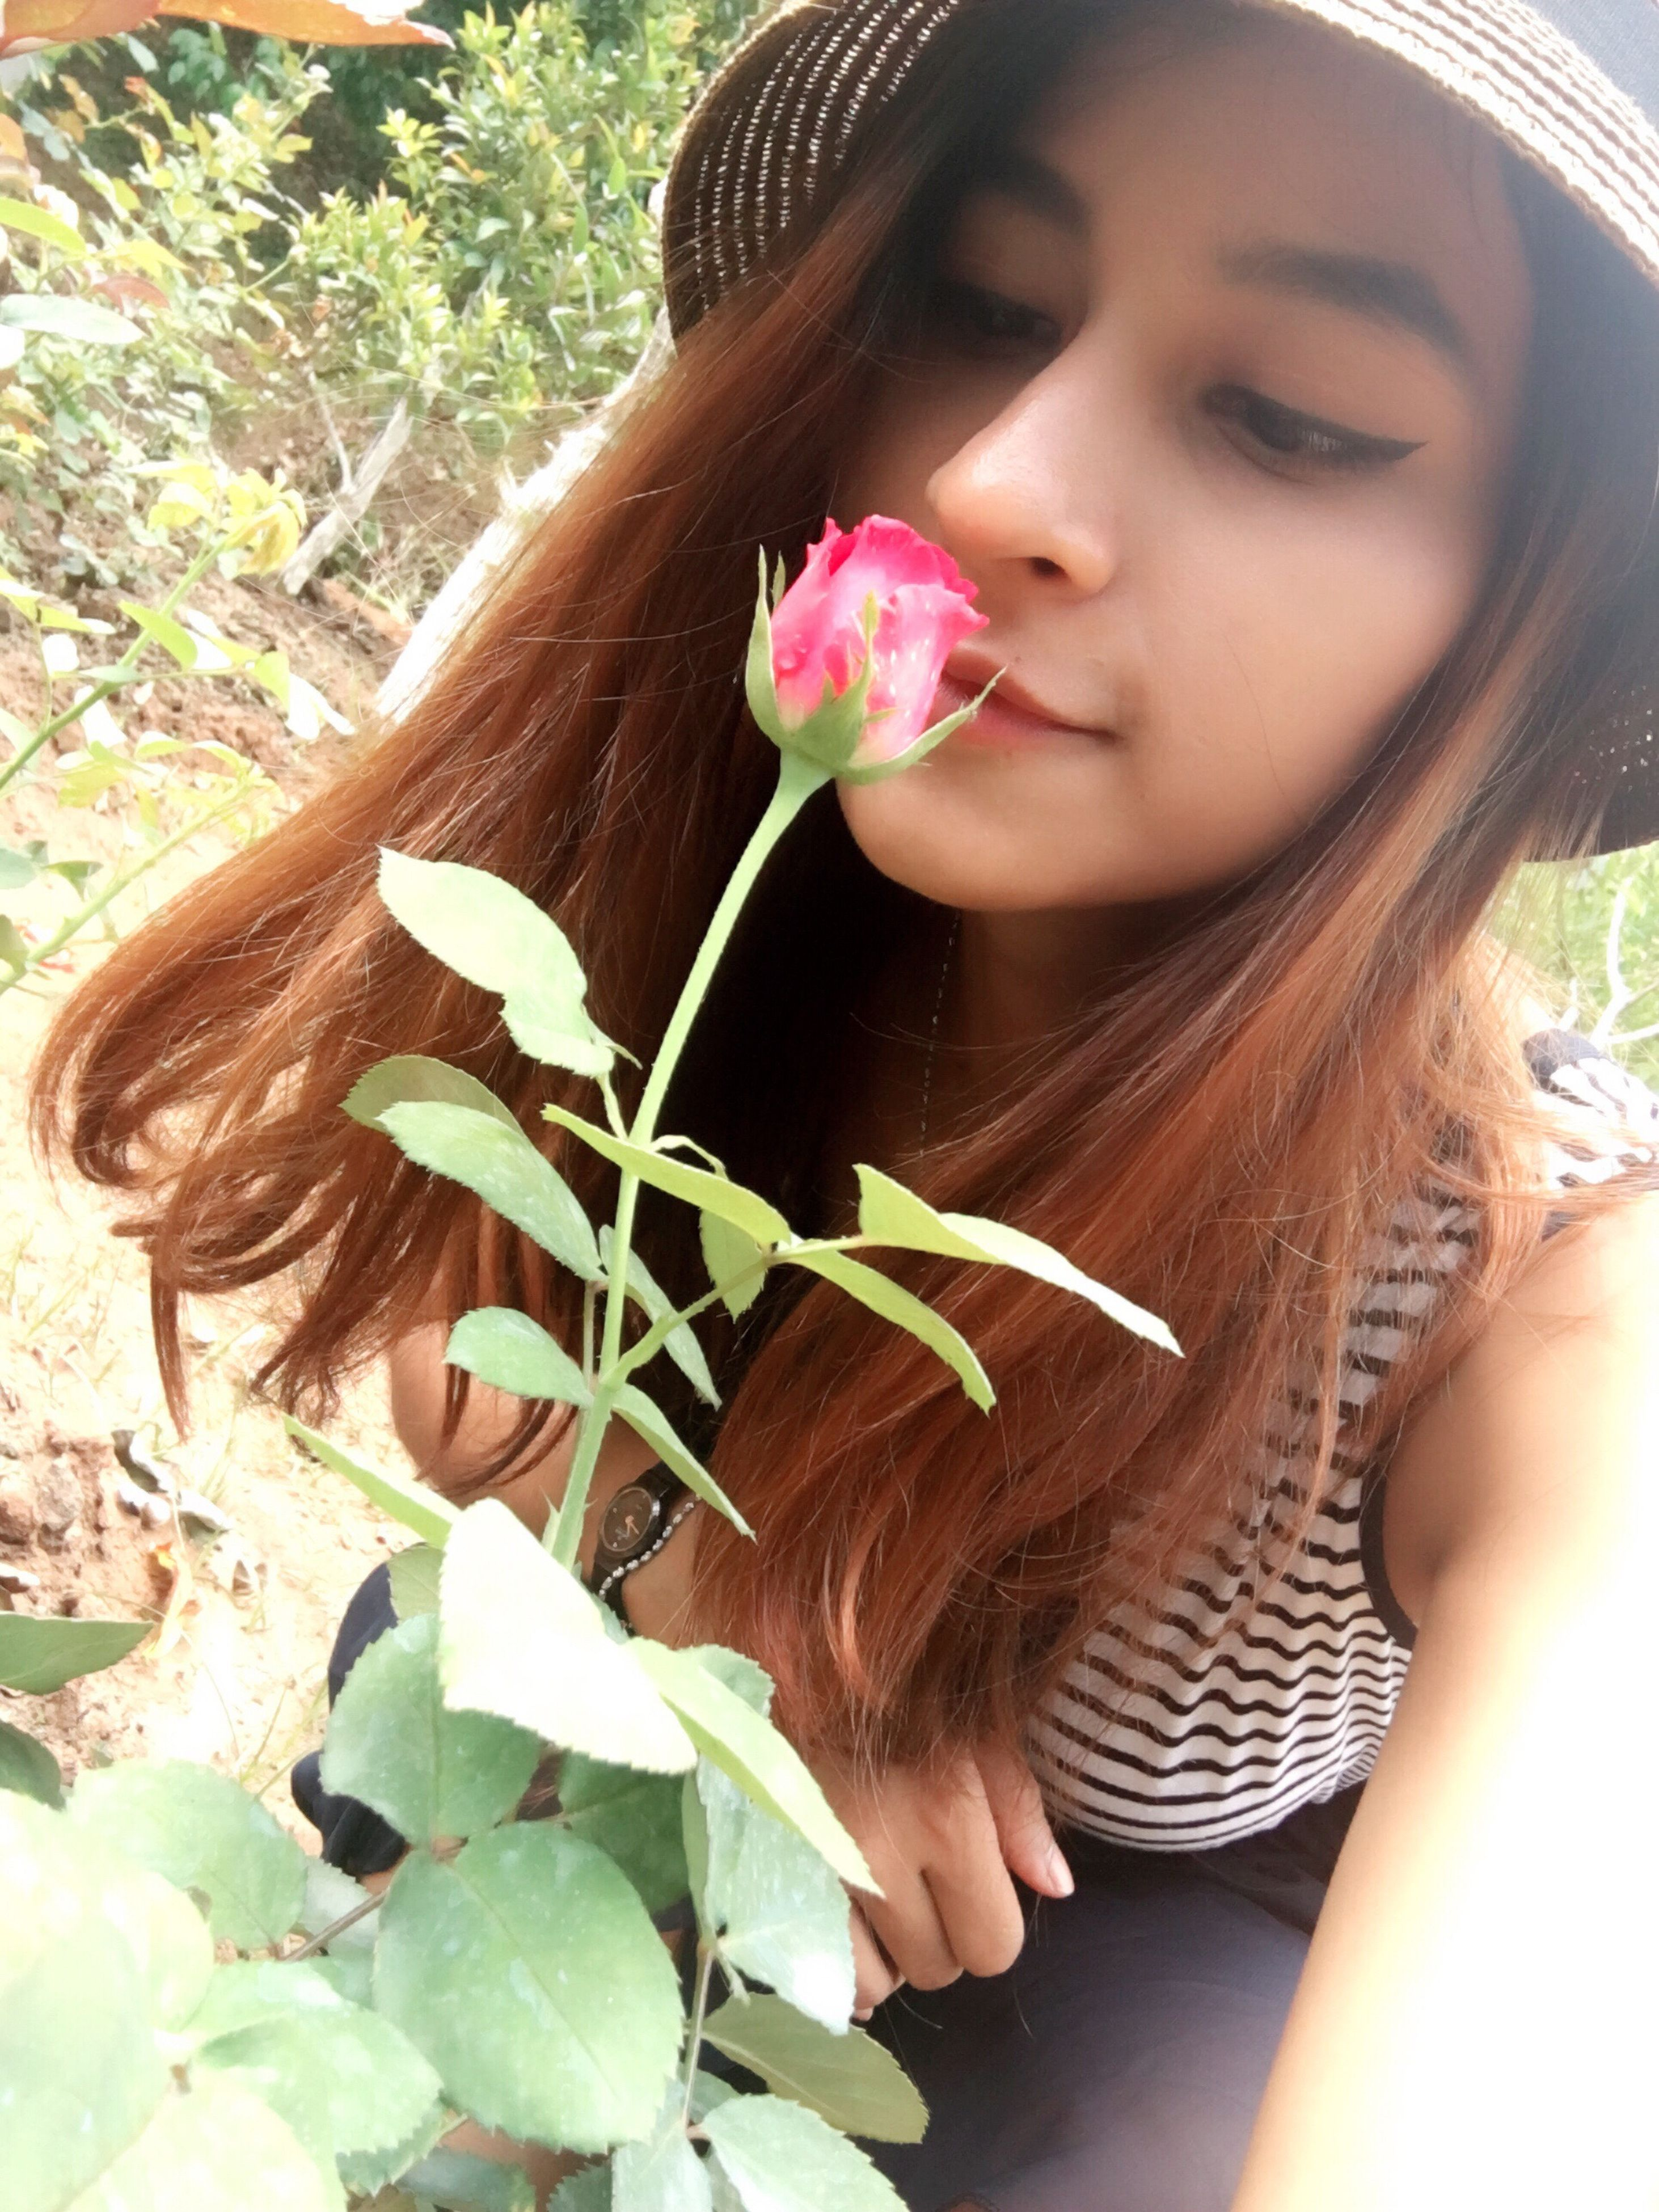 flower, person, young women, fragility, lifestyles, freshness, young adult, leisure activity, casual clothing, holding, girls, childhood, long hair, front view, elementary age, plant, pink color